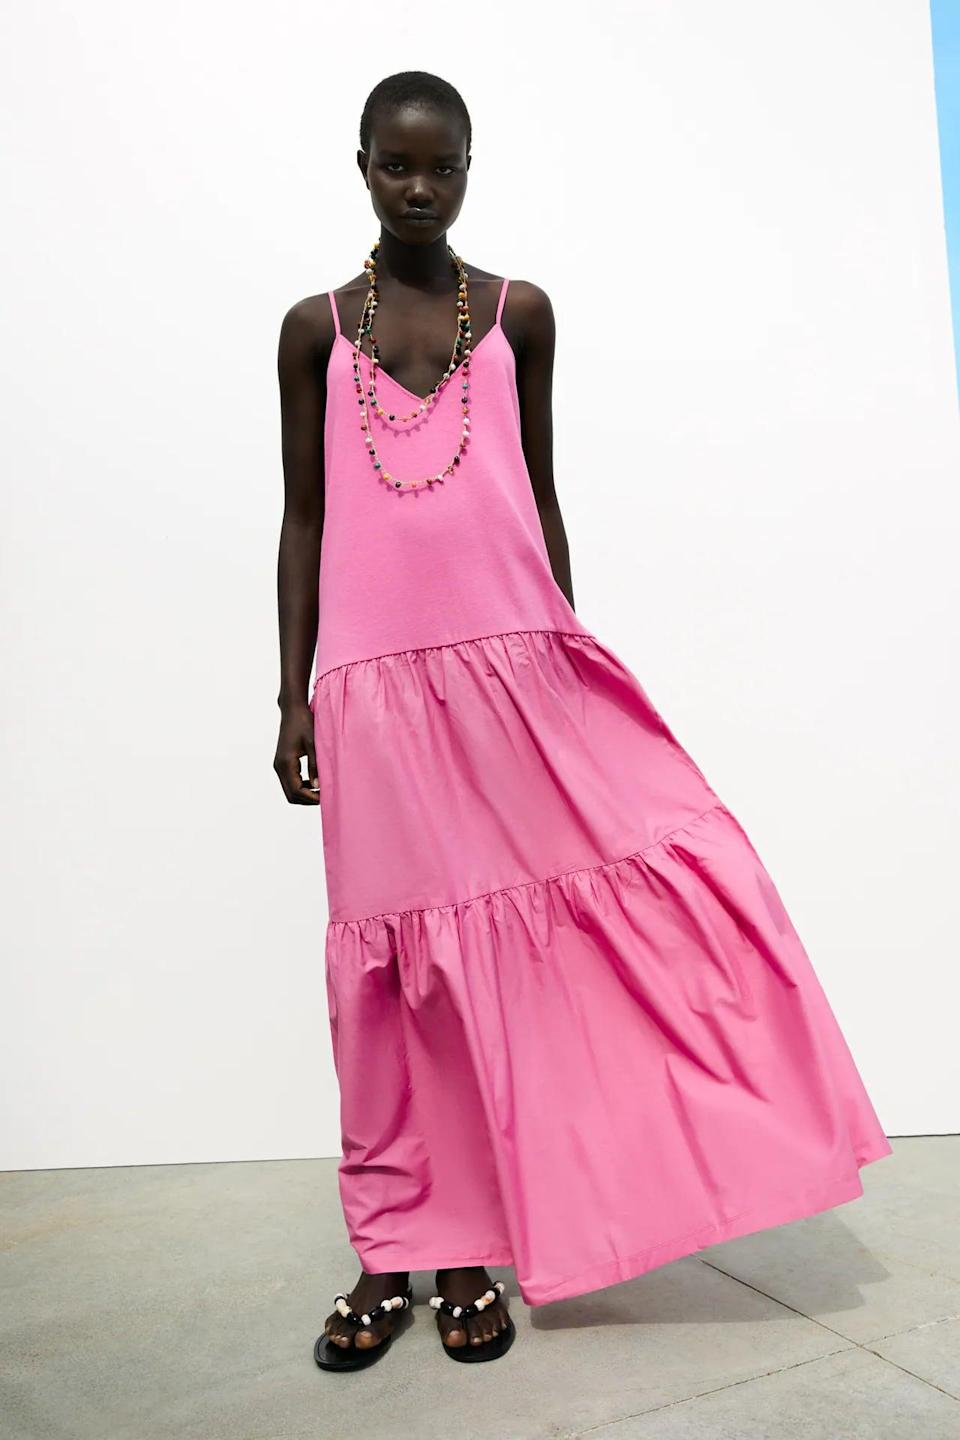 <p>This <span>Zara Long Tiered Dress</span> ($40) will help you step into any space with style and aplomb. It's a bright, head-turning piece that will pair well with slide sandals and low-heeled mules alike.</p>